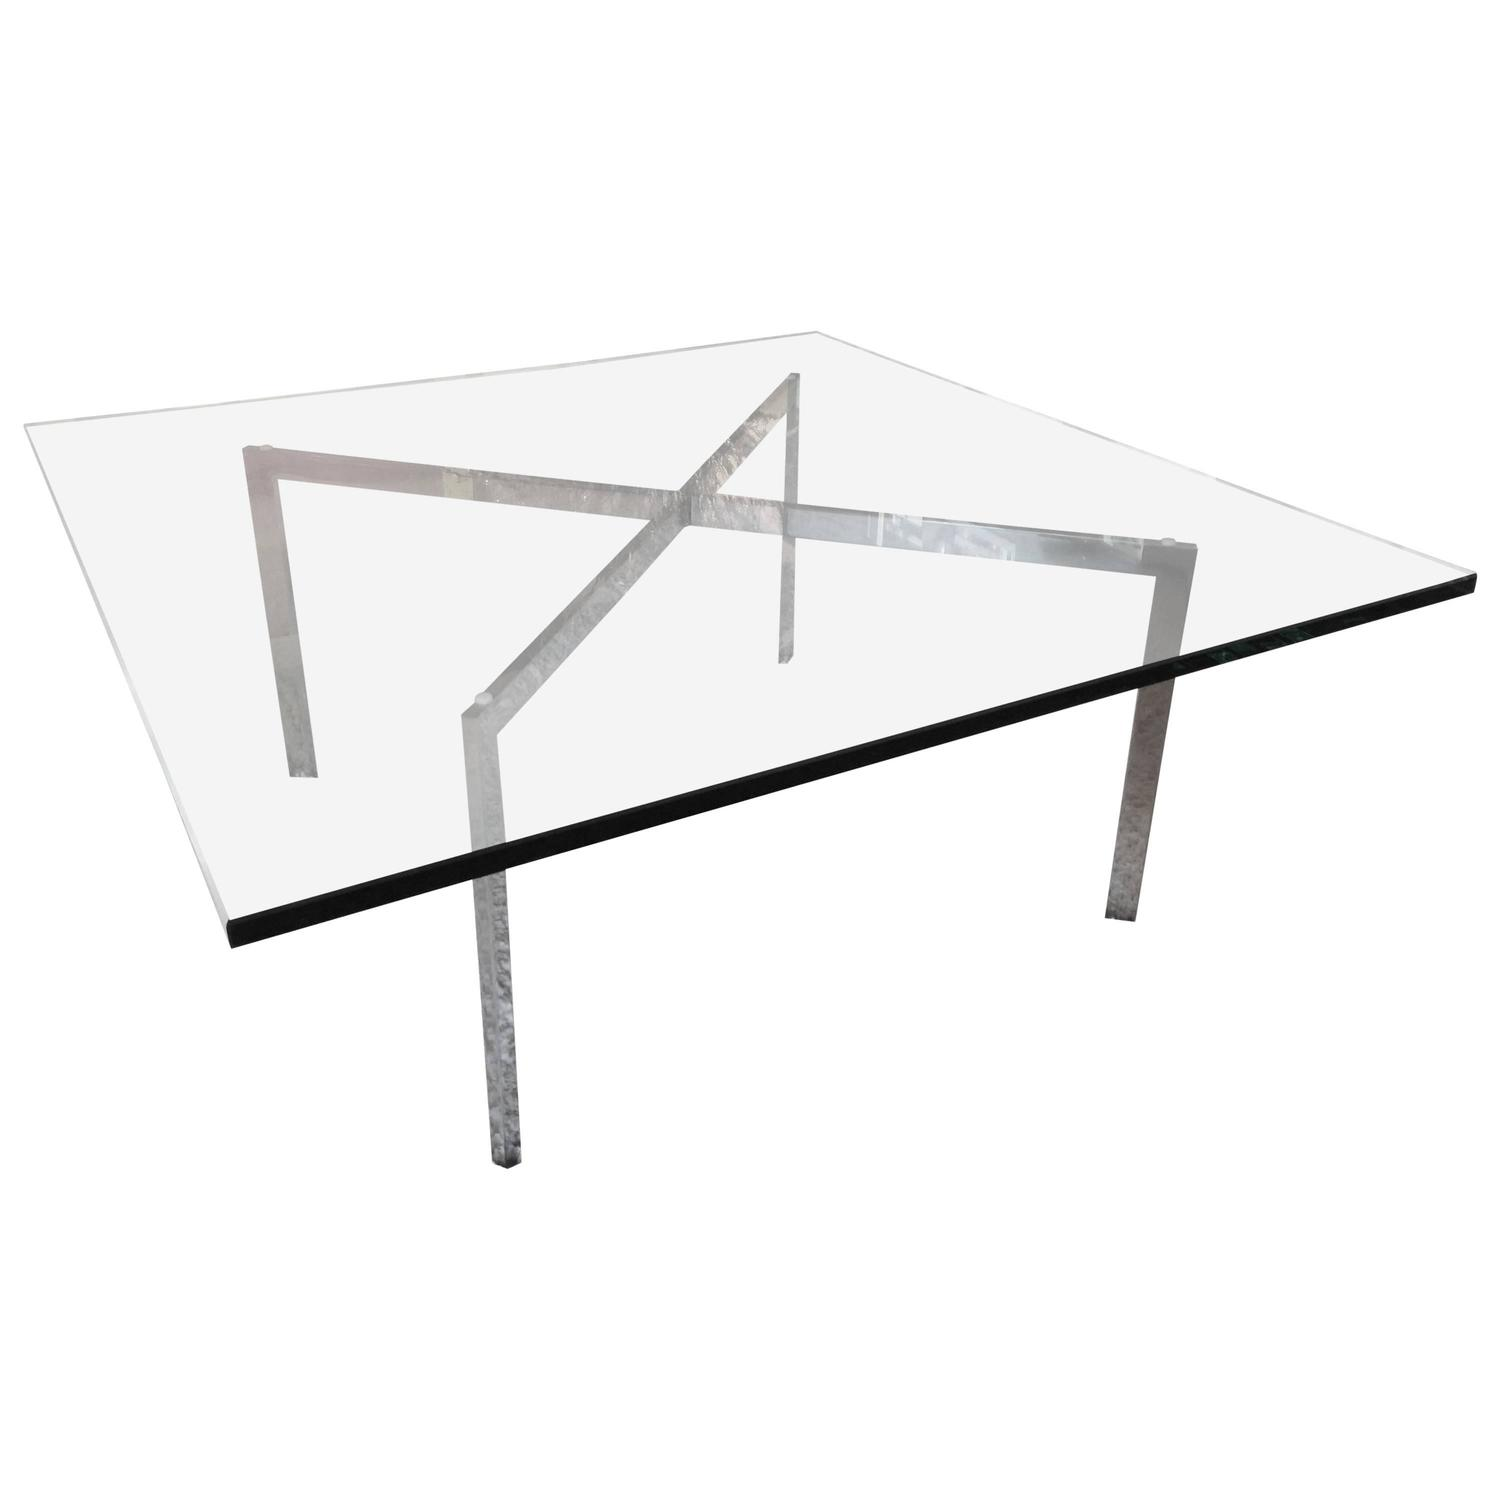 Superieur Mies Van Der Rohe For Knoll Barcelona X Base Coffee Table At 1stdibs